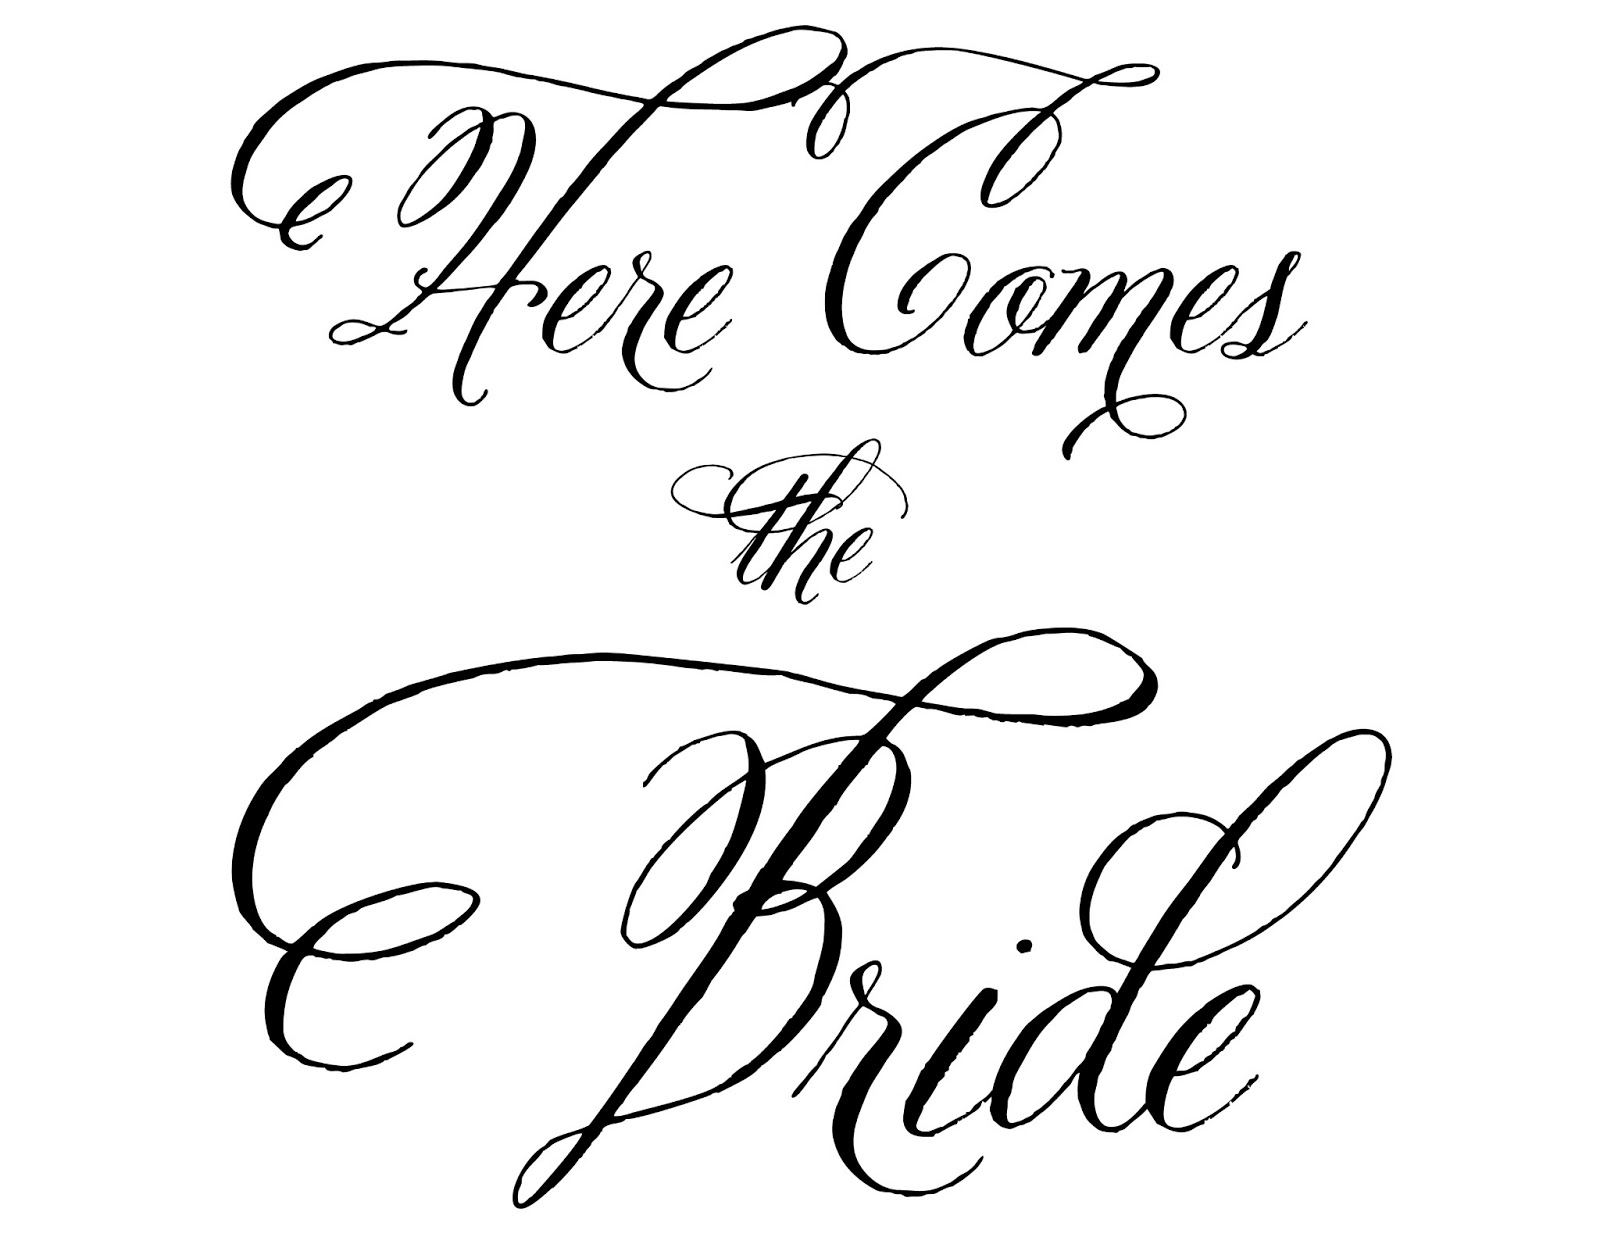 Here comes the bride clipart.